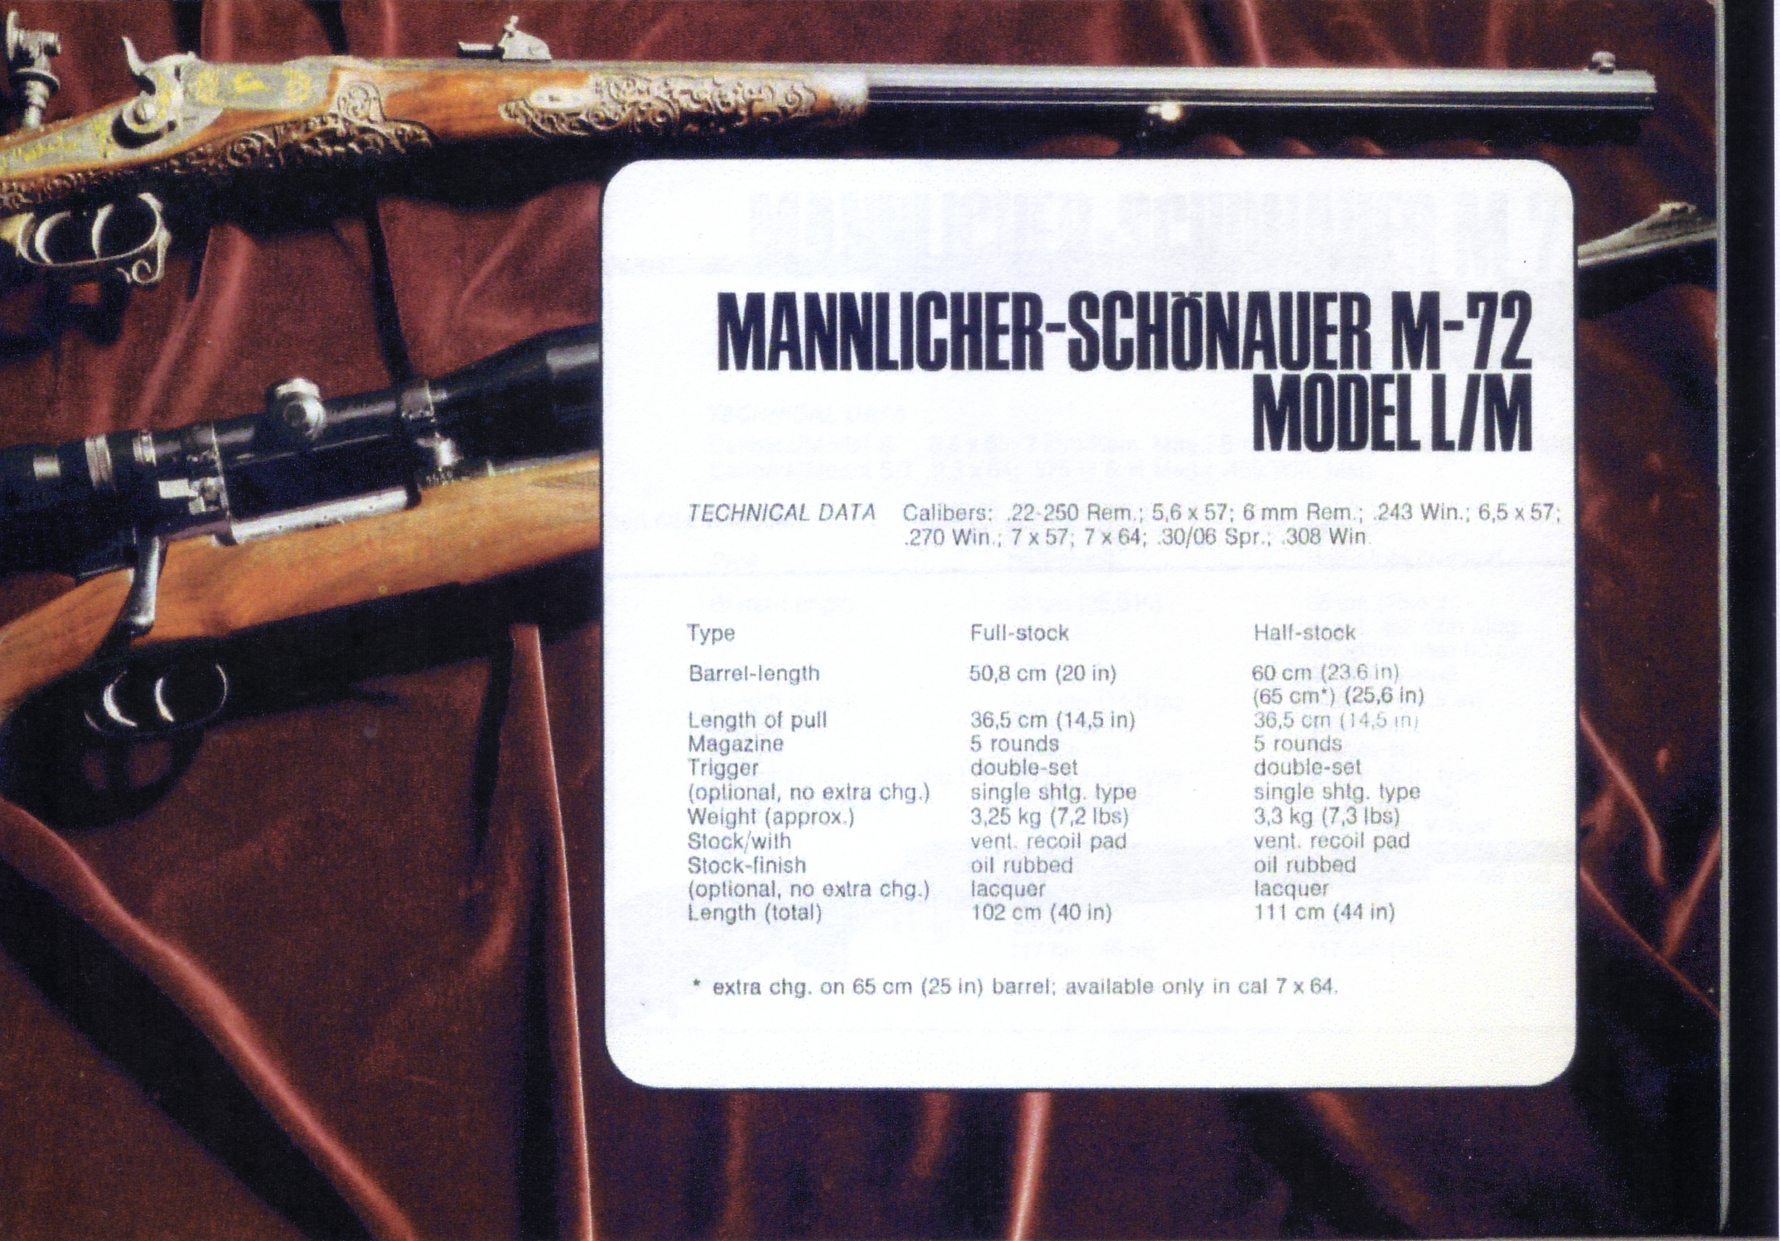 The Mannlicher-Schönauer M72 Model L/M specifcations and caliber options. (Picture from the original Steyr catalog and courtesy of Steyr.)